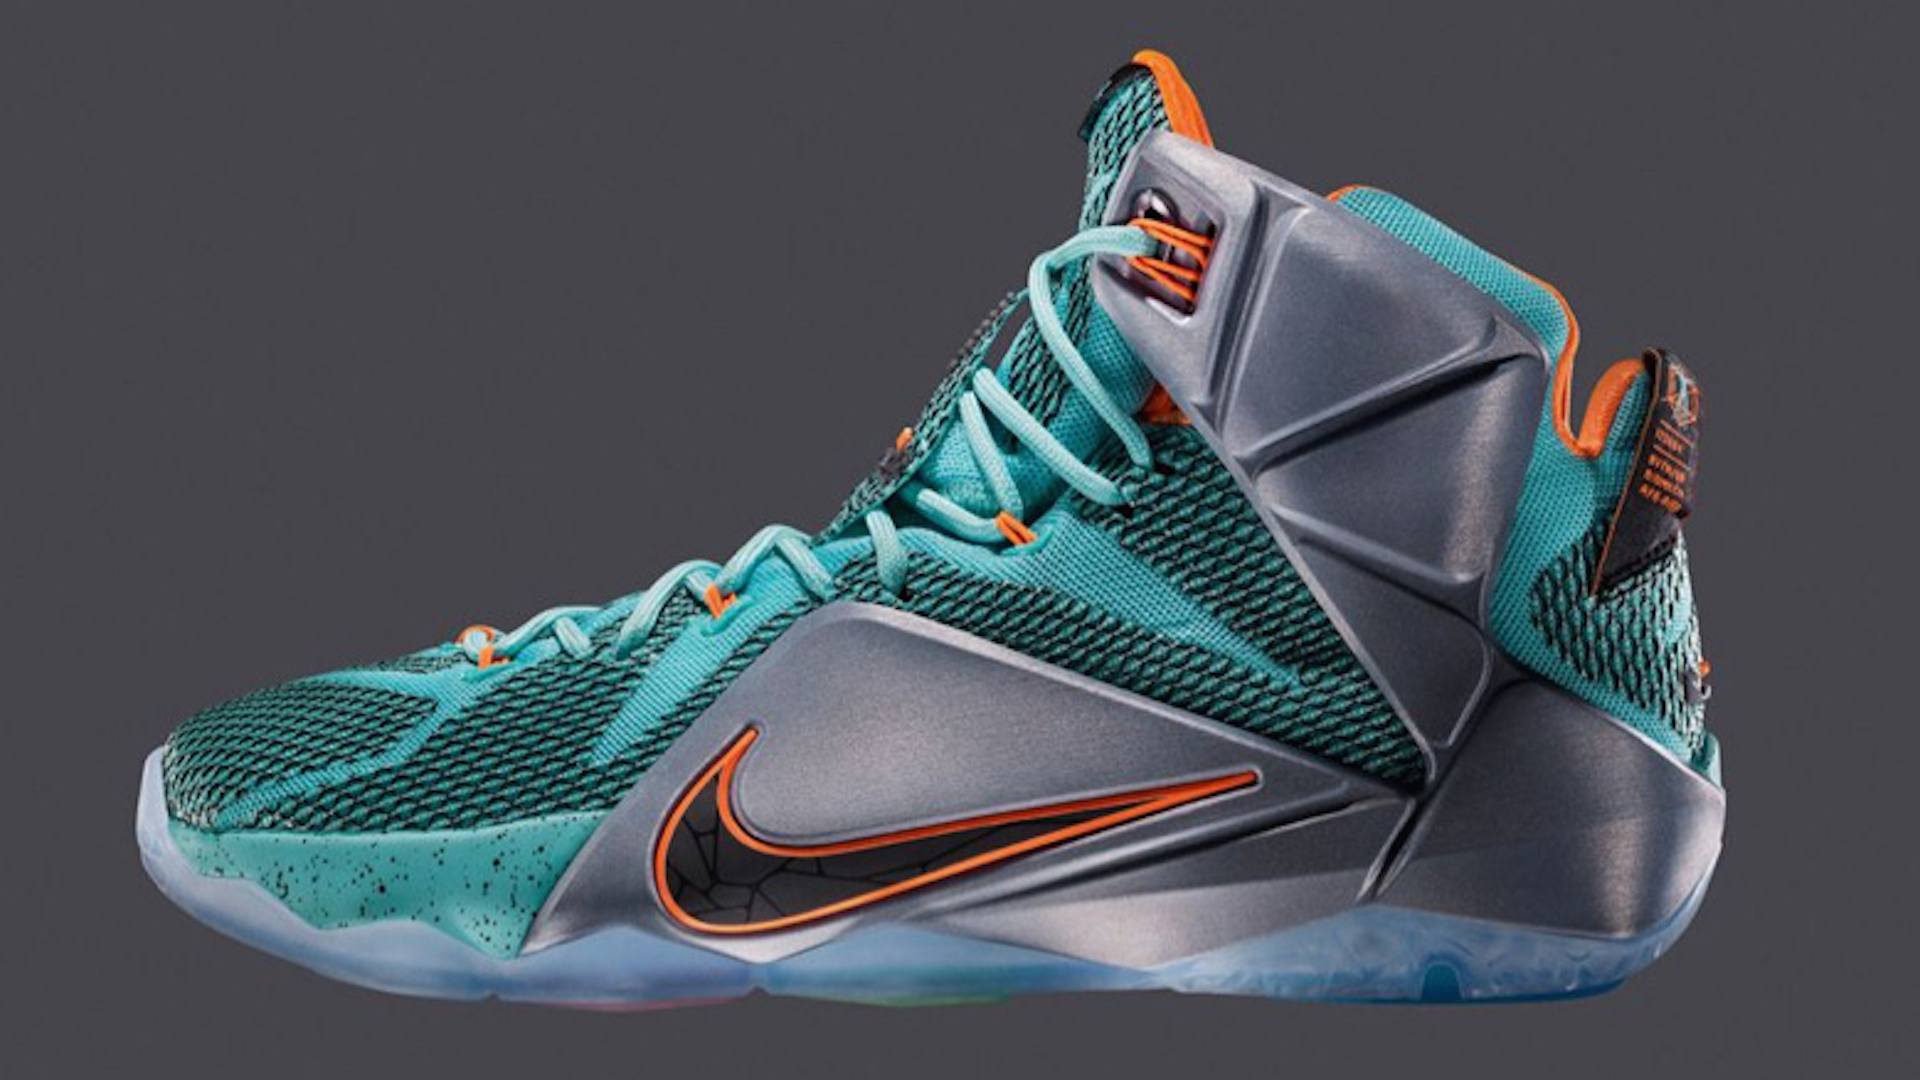 lebron latest sneakers lbj shoes